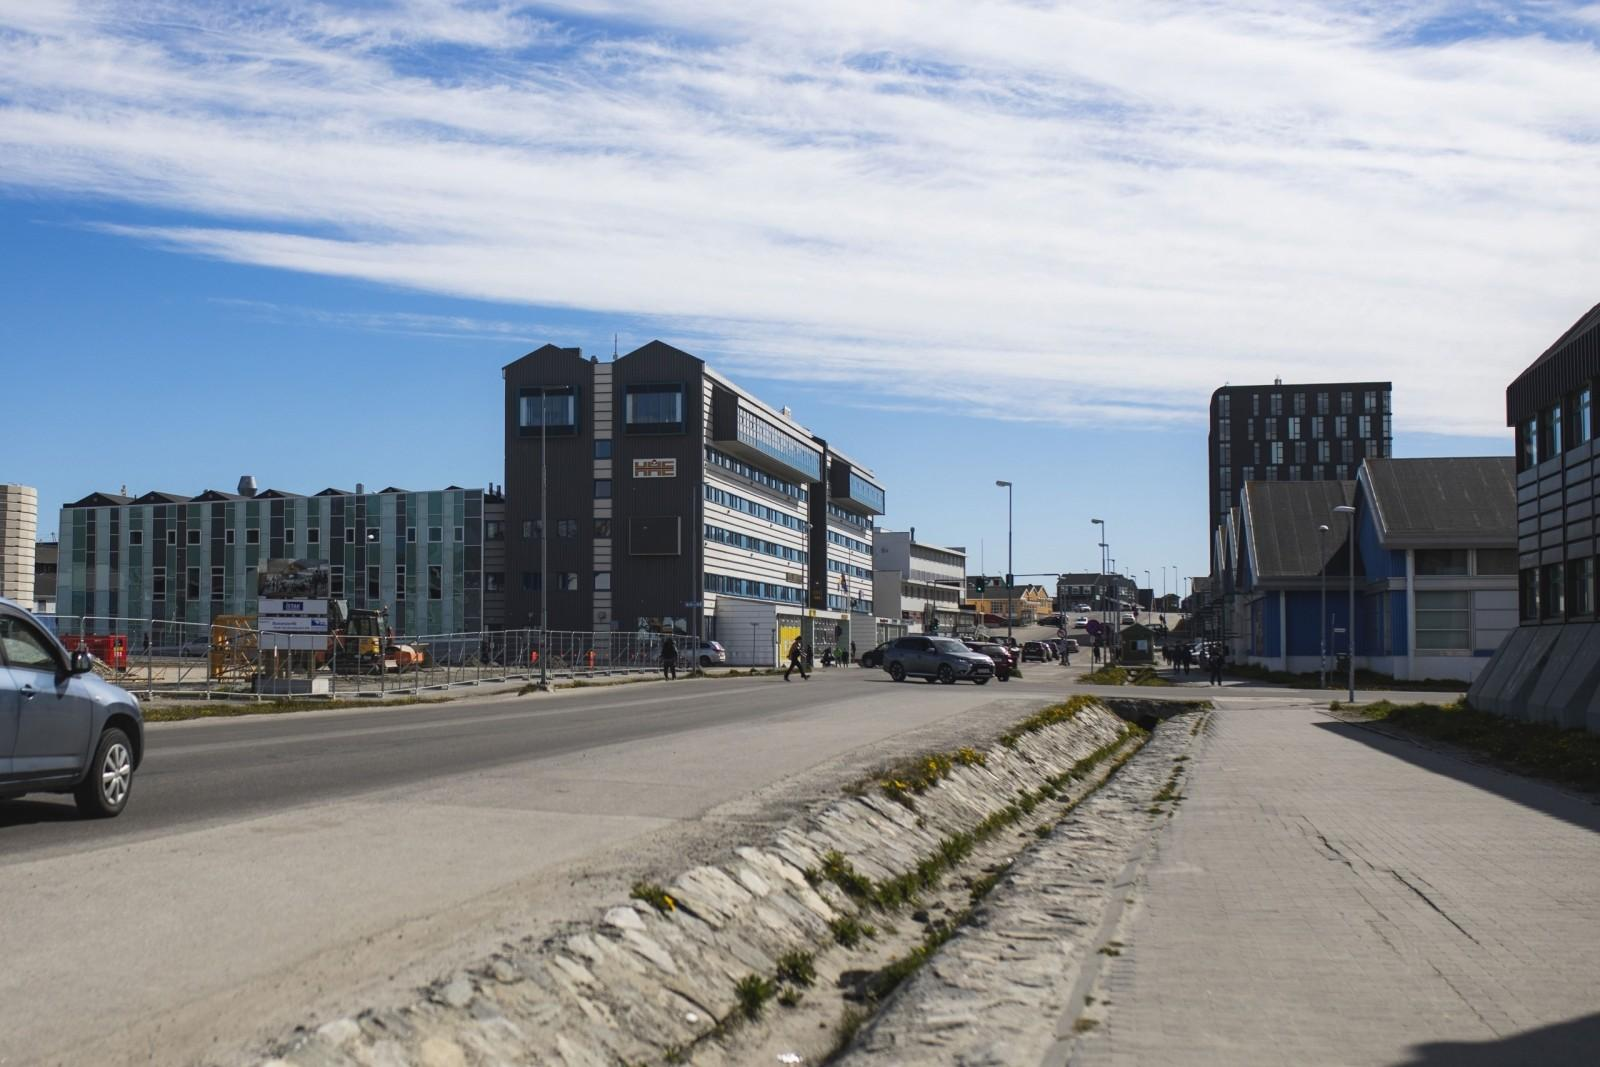 After-The main road of Nuuk